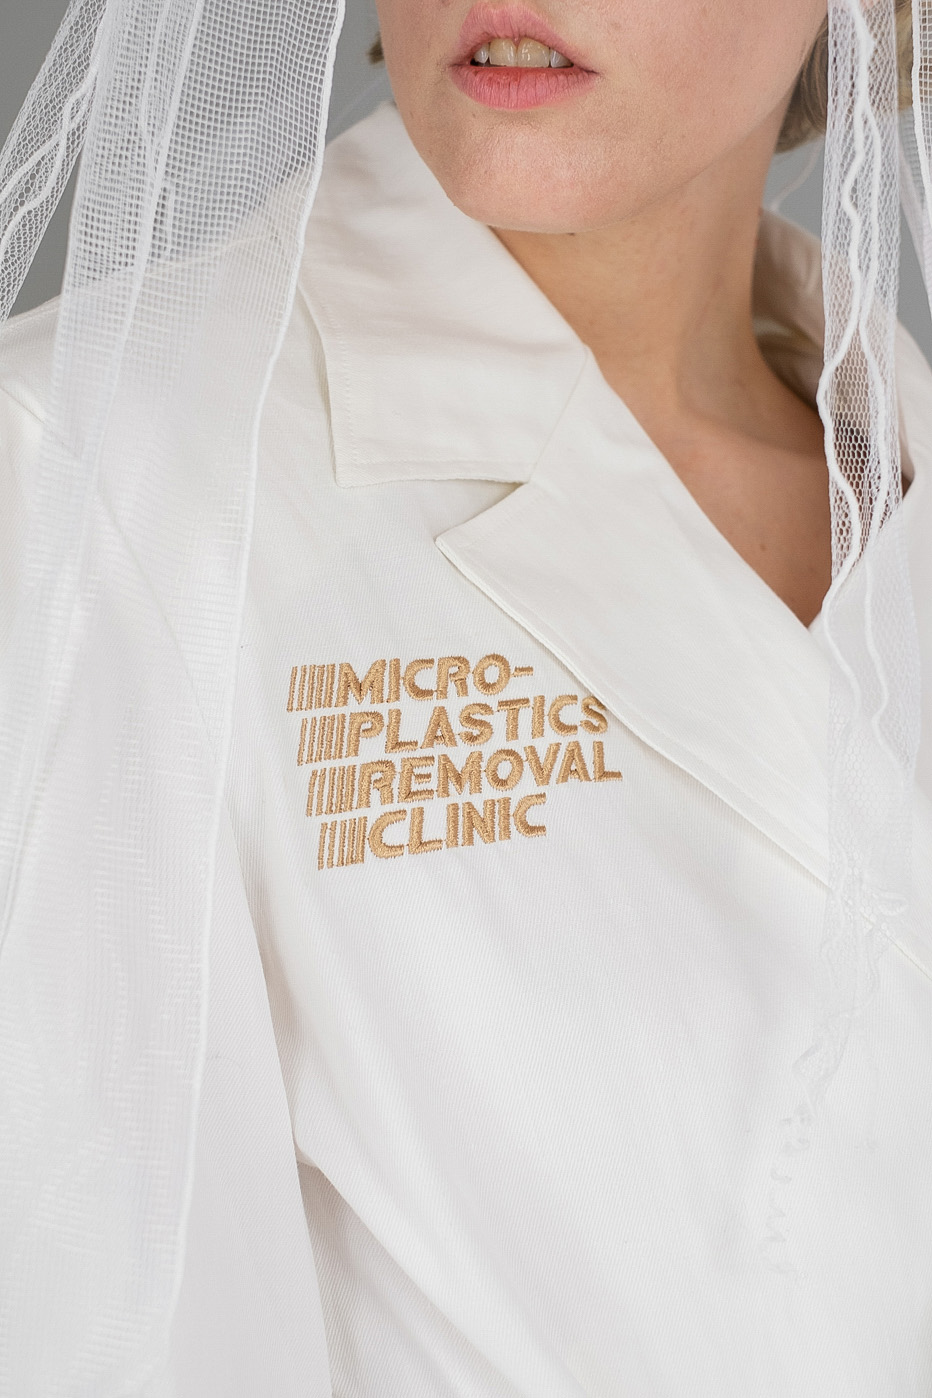 Removal Clinic Jacket 7